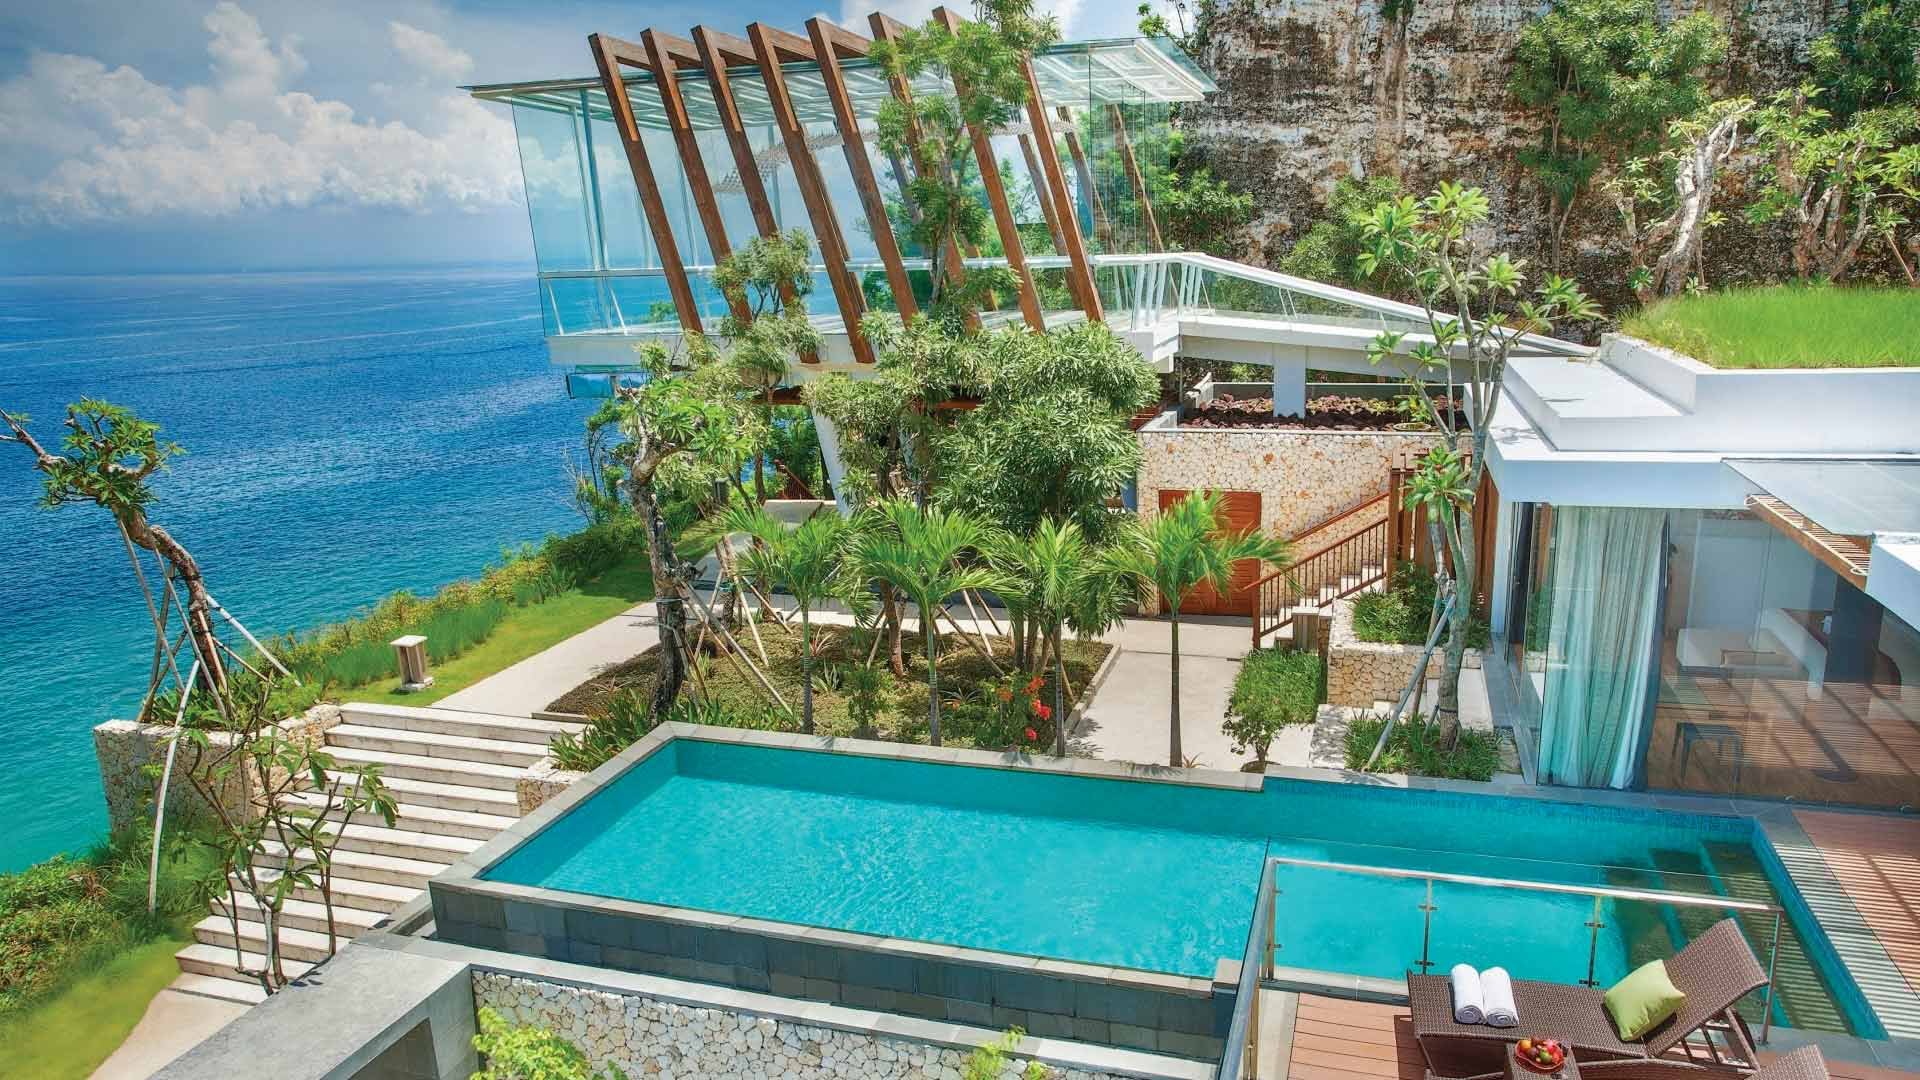 https://assets.anantara.com/image/upload/q_auto/media/minor/anantara/images/anantara-uluwatu-bali-resort/the-resort/anantara_uluwatu_three_bedroom_ocean_front_pool_villa_1920x1080.jpg